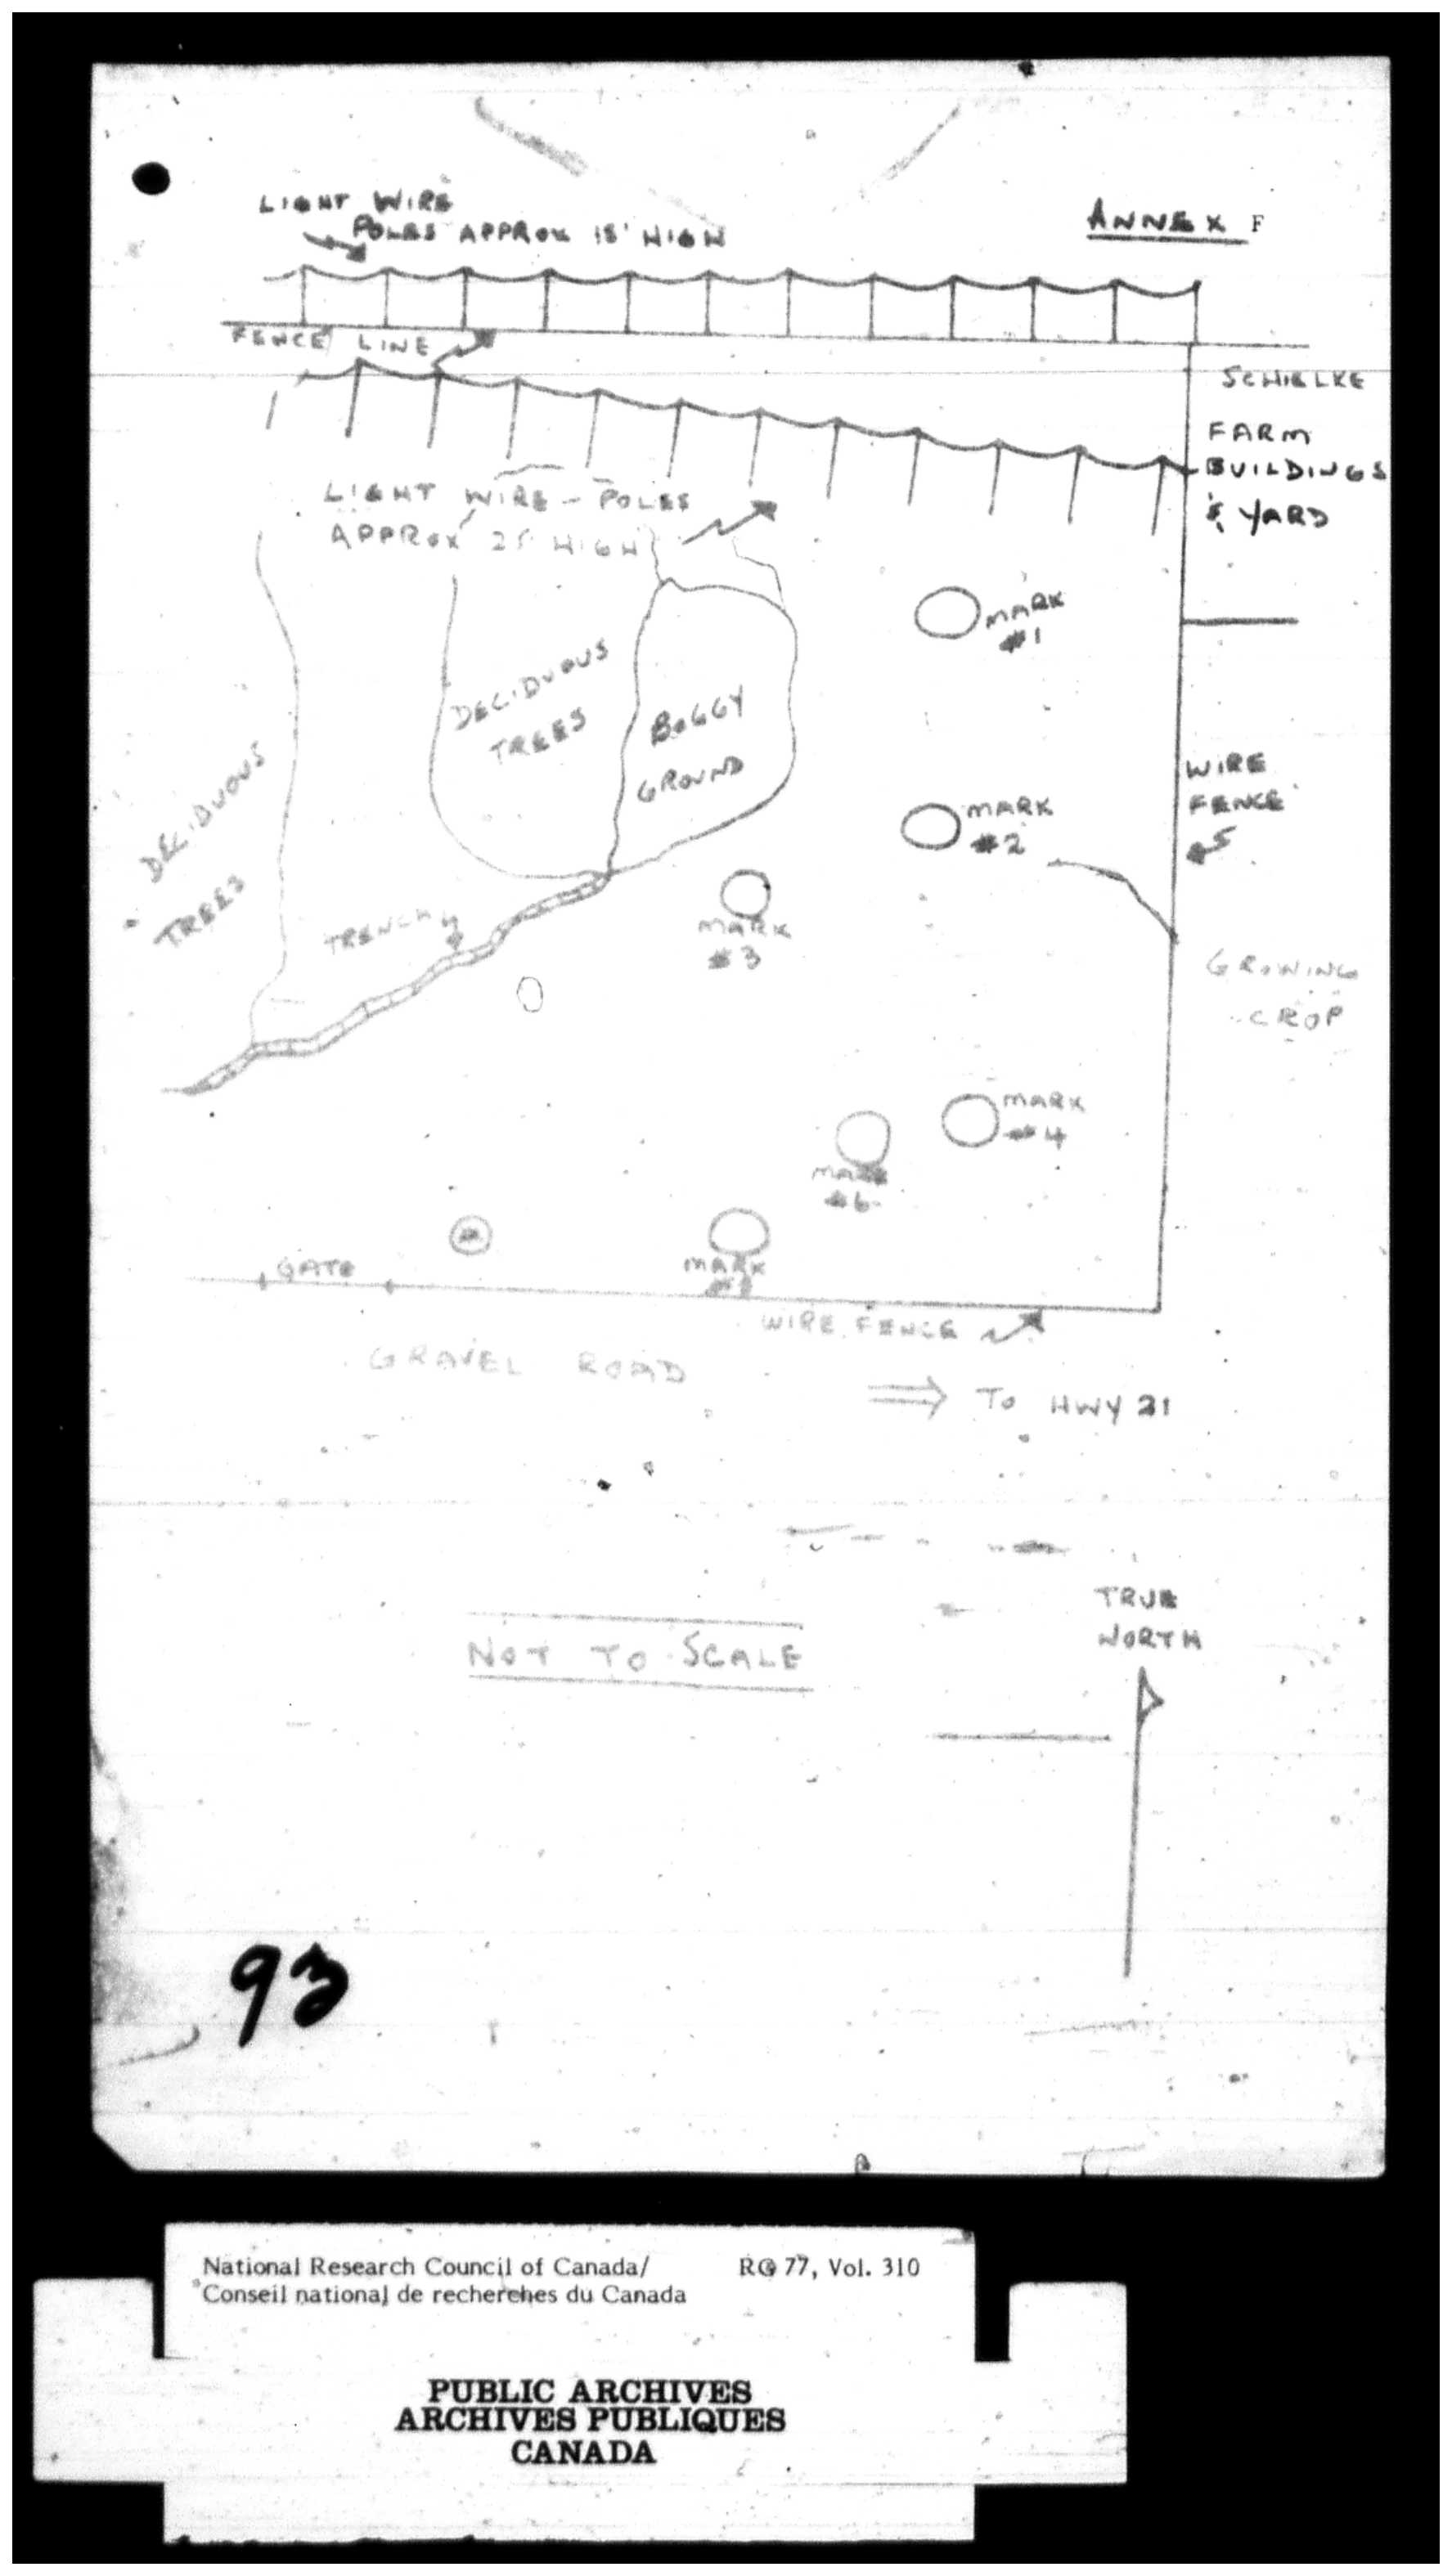 Sketch of the Duhamel, Alberta crop circles reported in 1967